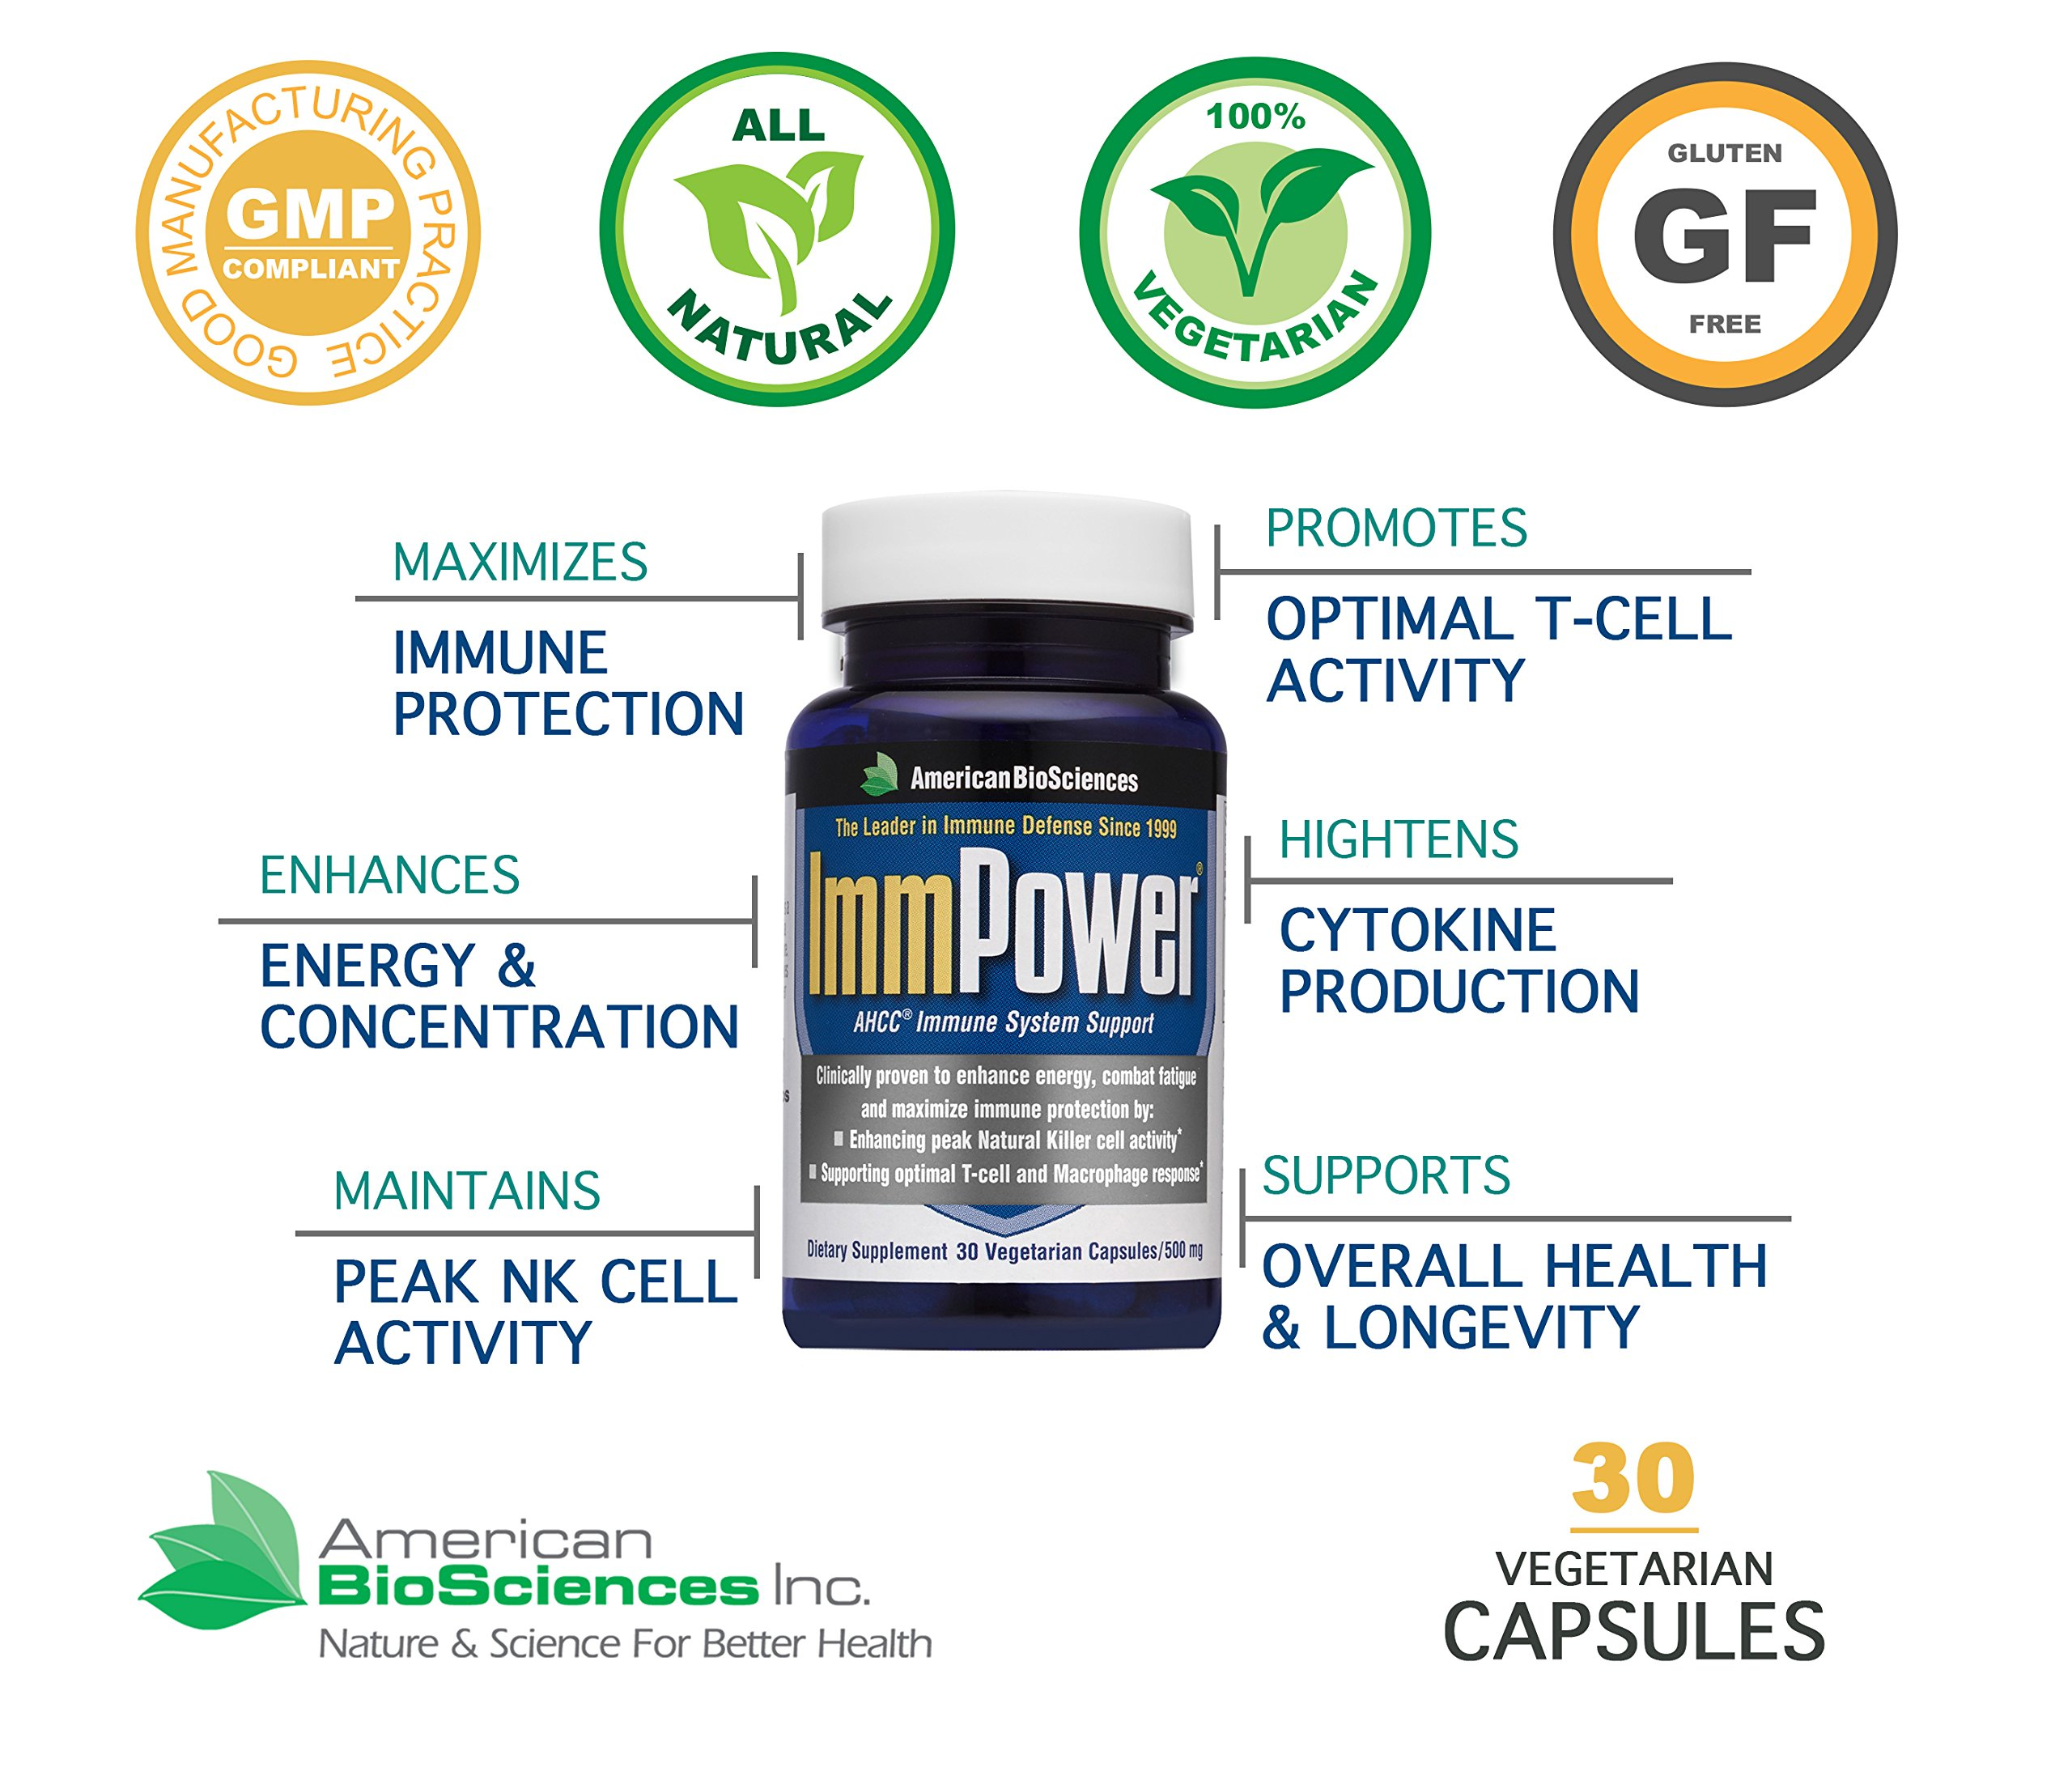 American BioSciences ImmPower AHCC Supplement 6-Pack, Enhanced Immune Support, Natural Killer Cell Activity and Cytokine Production, 30 Vegetarian Capsules, 500 milligrams per Capsule by American Biosciences (Image #4)